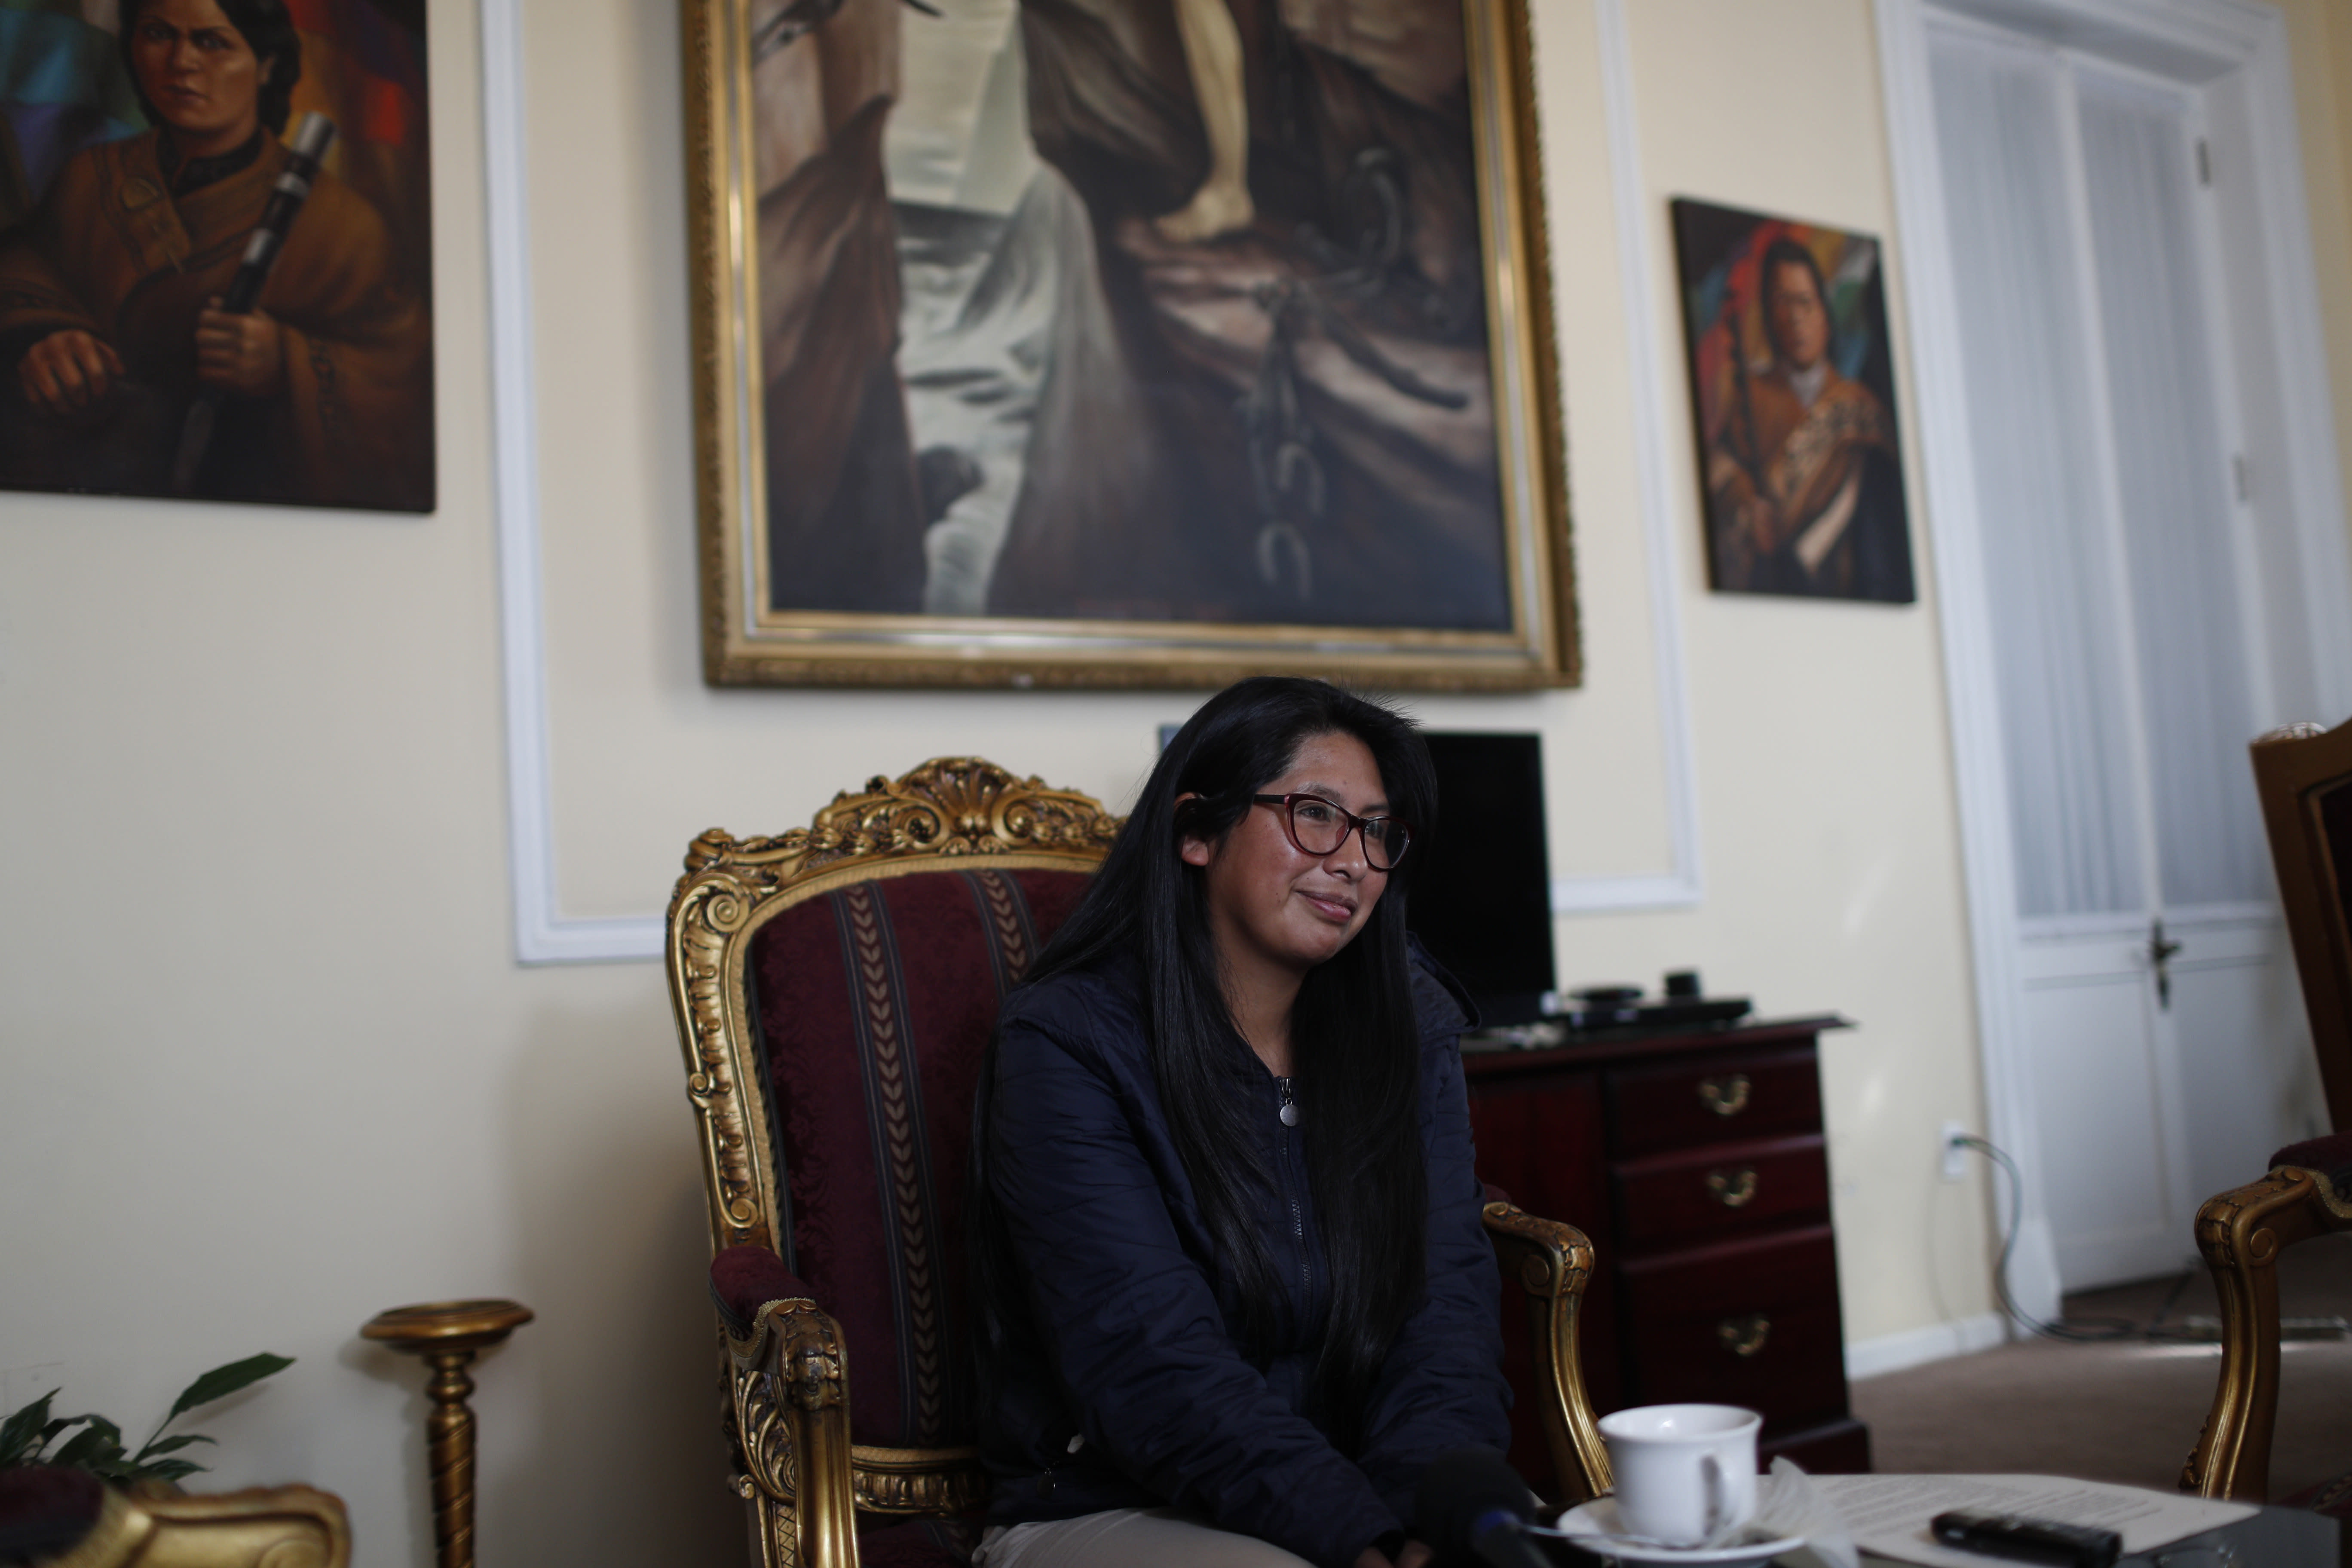 Bolivia's President of the Senate Monica Eva Copa speaks during an interview at the Plurinational Legislative Assembly in La Paz, Bolivia, Tuesday, Nov. 26, 2019. Evo Morales fell because of treasons, mistakes and because some became drunk with power, said Copa during the interview. (AP Photo/Juan Karita)